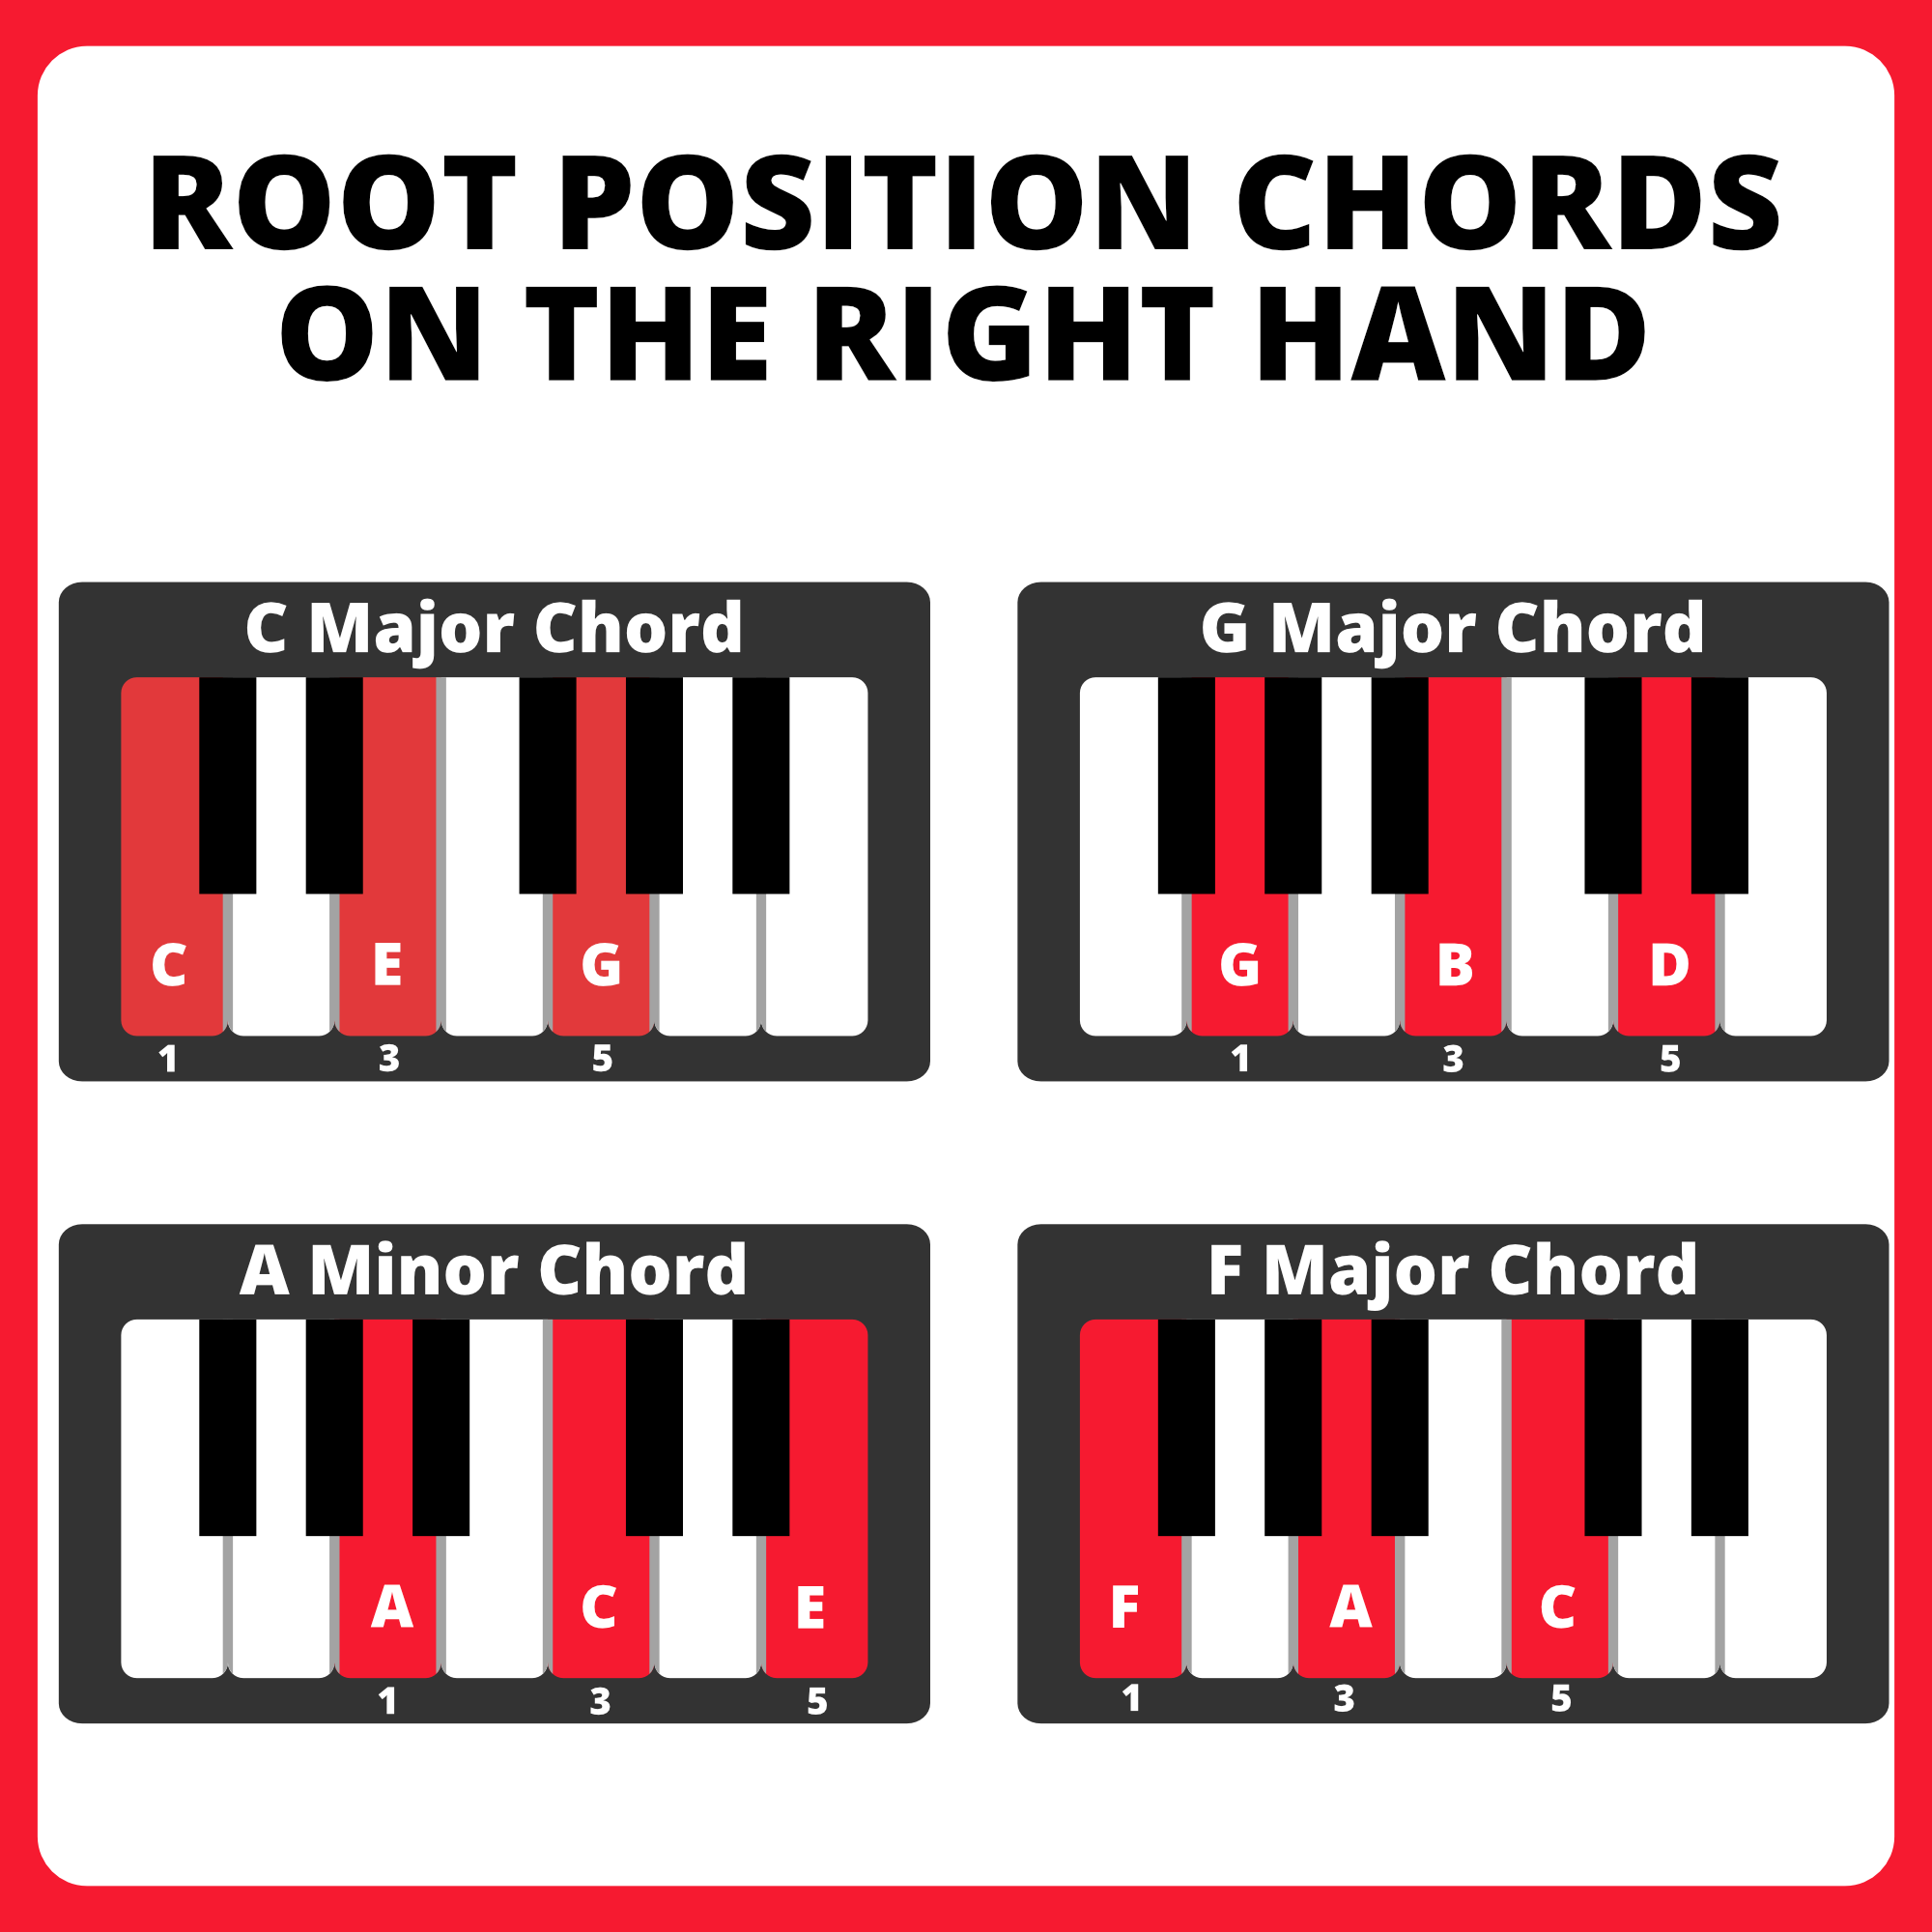 Diagram of root position chords on the right hand. C major chord is CEG played with fingers 1-3-5. G major is GBD fingers 1-3-5. A minor chord is ACE fingers 1-3-5. F major chord is FAC with fingers 1-3-5.